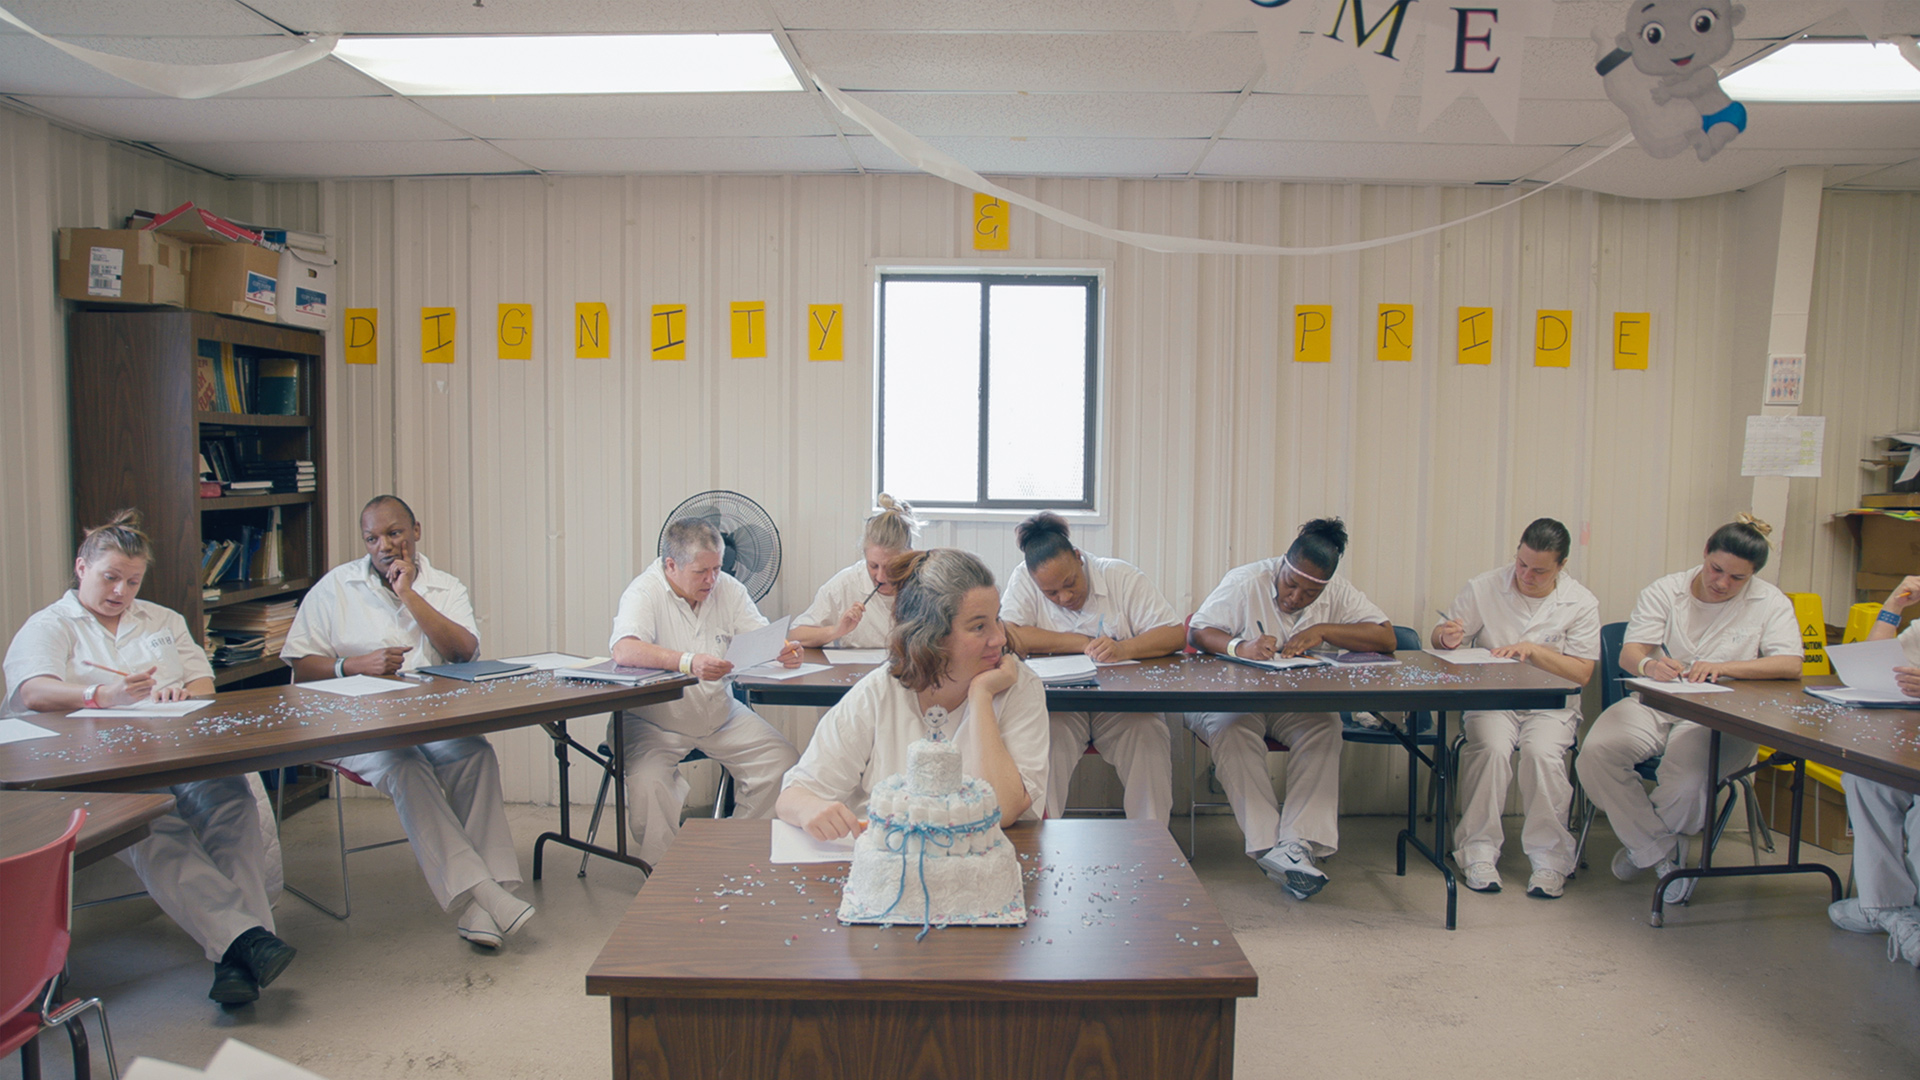 """Pregnant inmate Misty sits in the center of a room with a cake celebrating her soon newborn baby in front of her, with fellow inmates sitting around her writing on pieces of paper. 